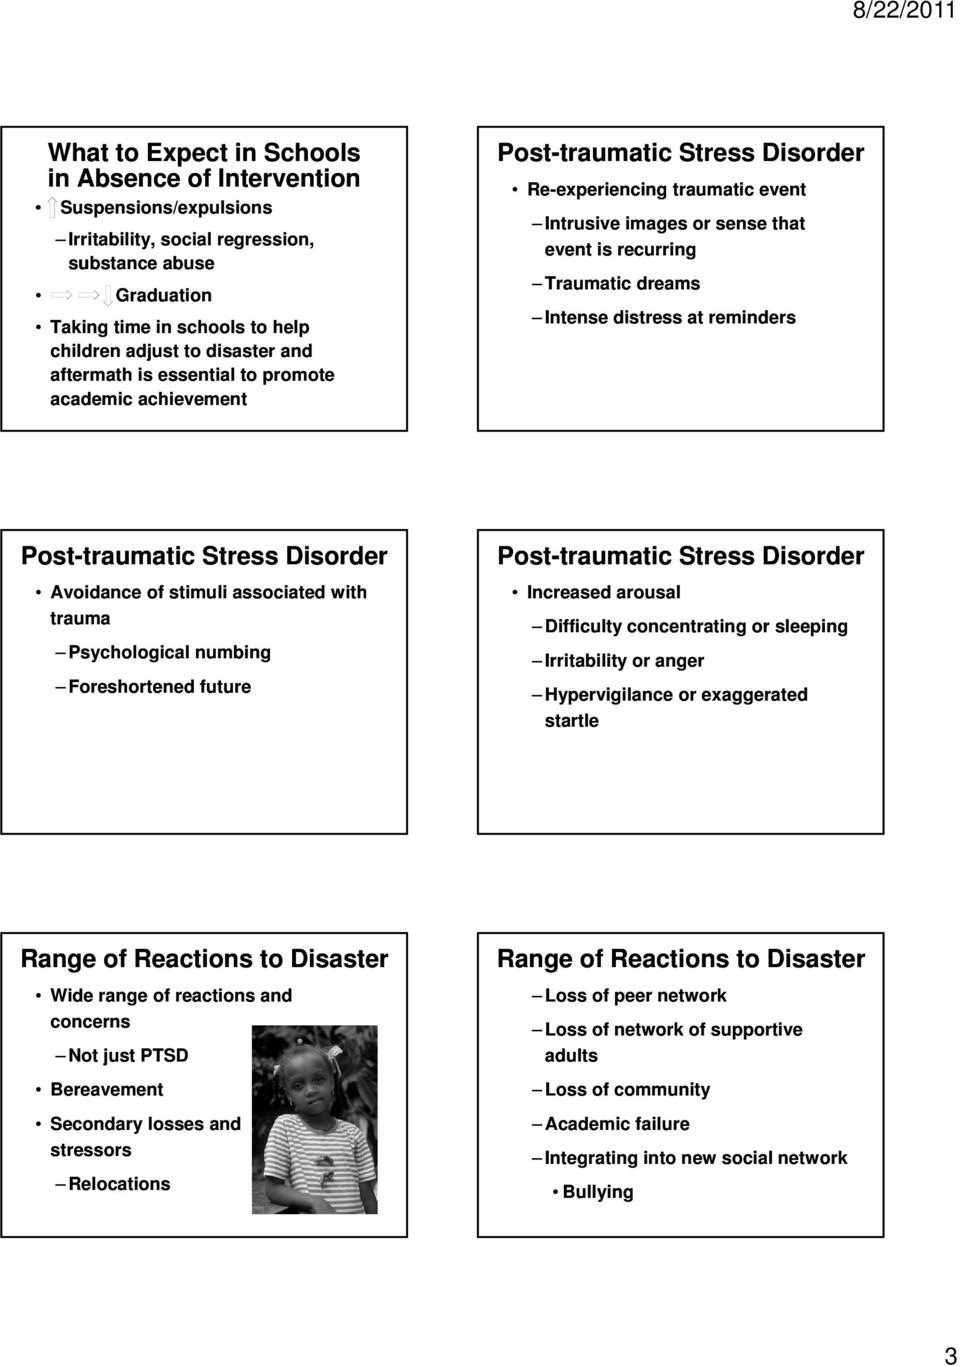 distress at reminders Post-traumatic Stress Disorder Avoidance of stimuli associated with trauma Psychological numbing Foreshortened future Post-traumatic Stress Disorder Increased arousal Difficulty